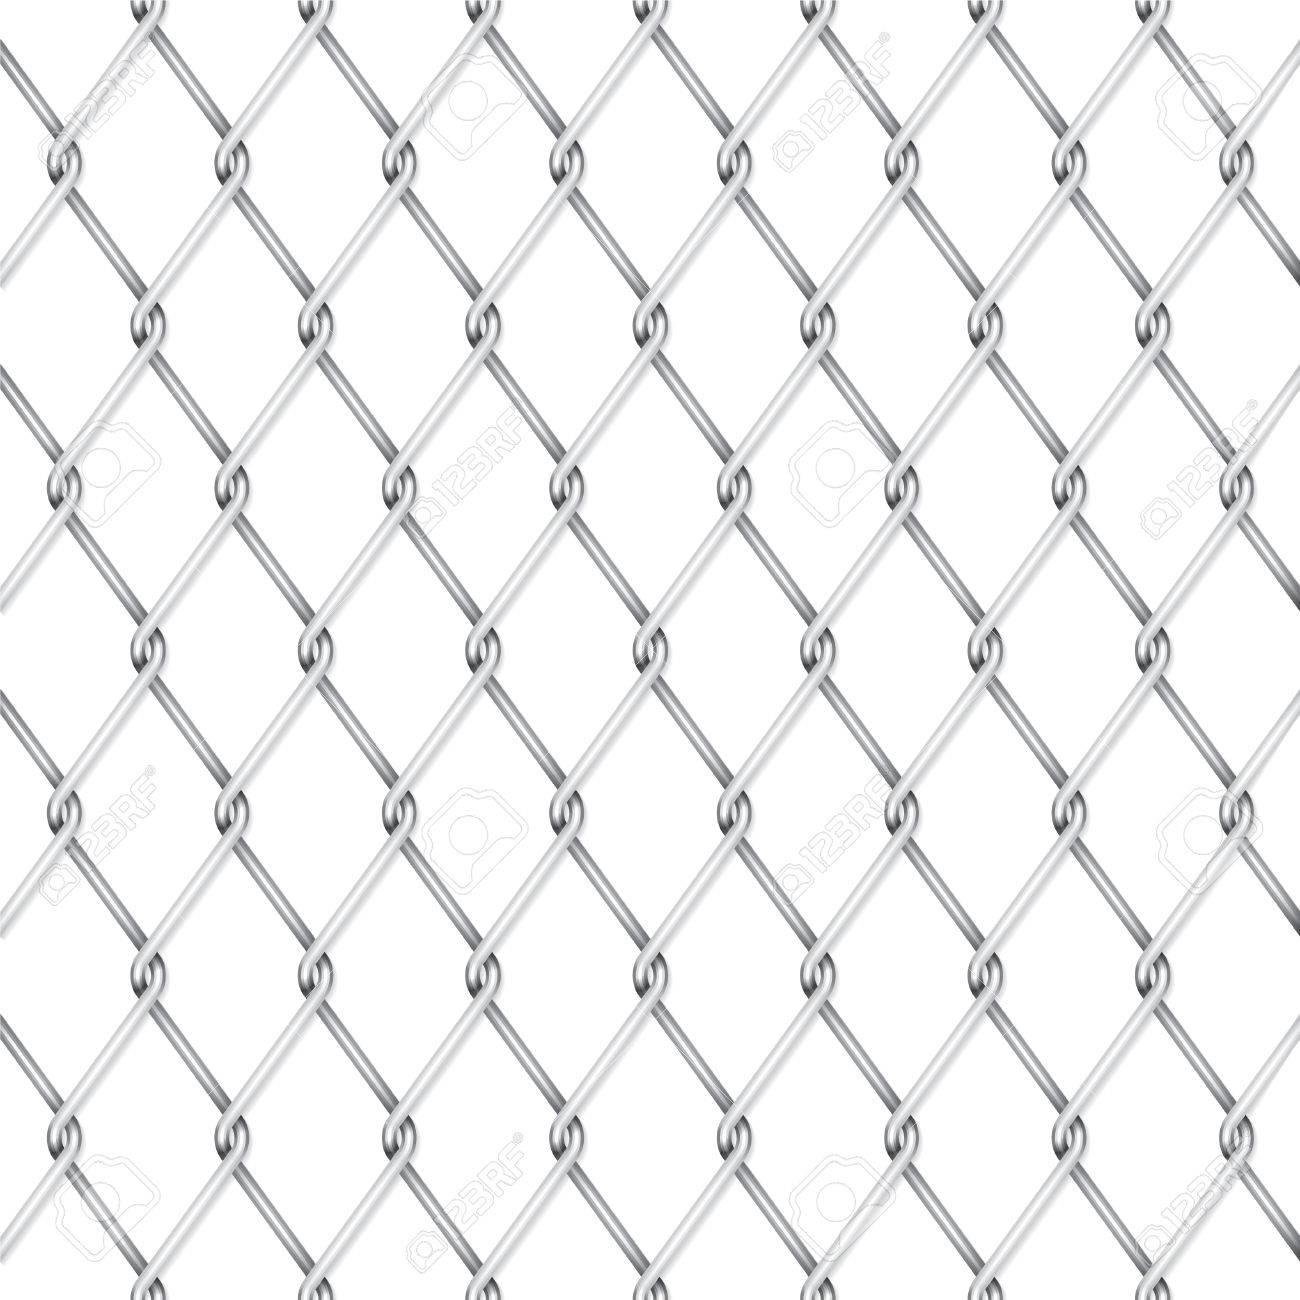 Vector wire fence Stock Vector - 8895801